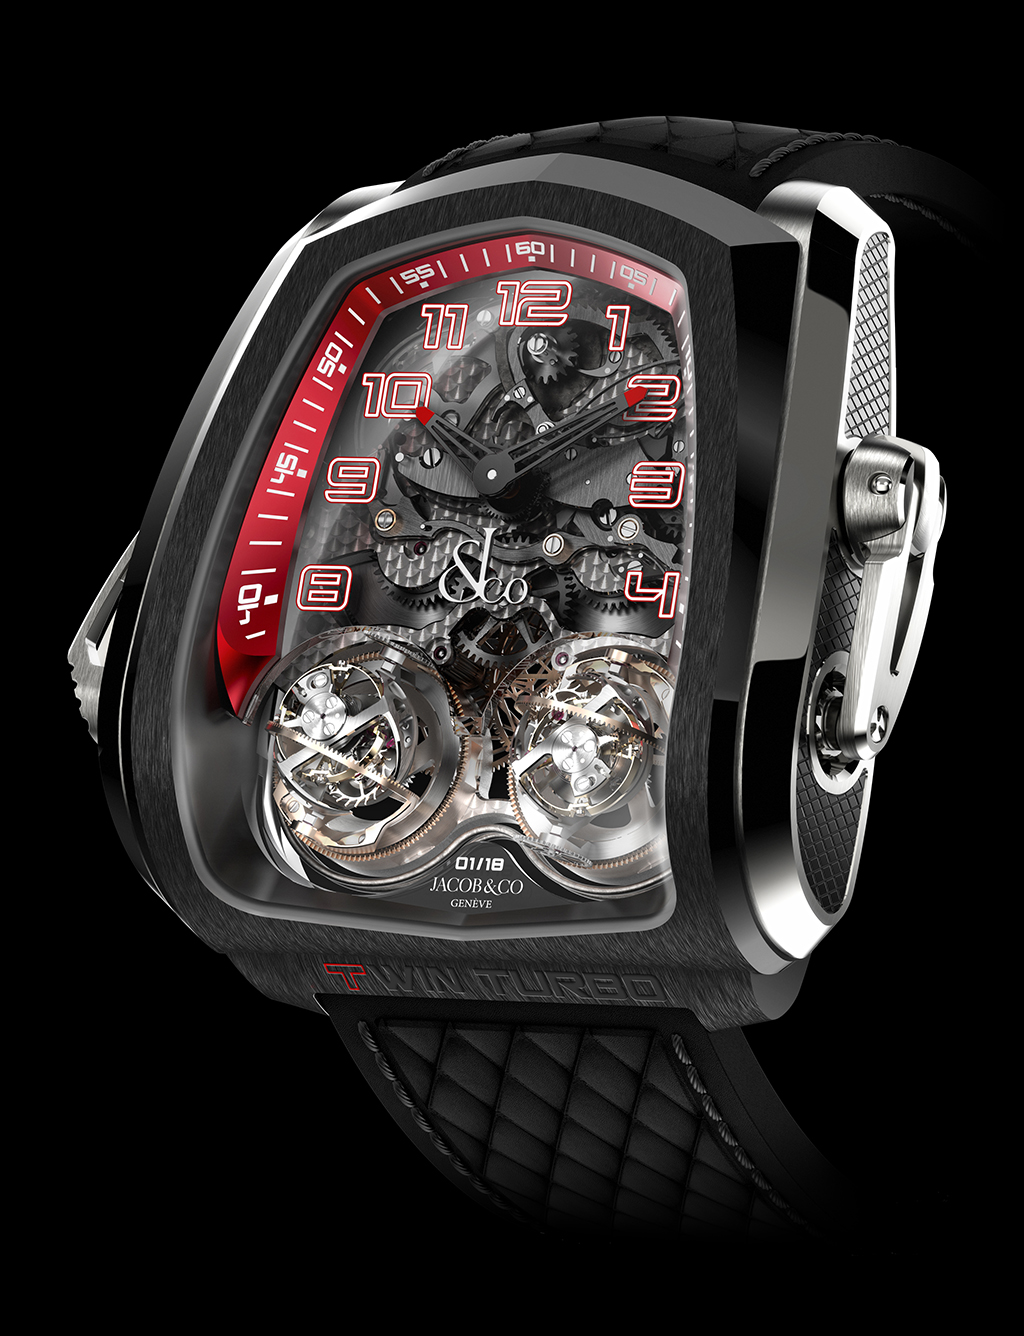 Jacob-Co-Twin-Turbo-Twin-Triple-Axis-Tourbillon-Minute-Repeater-1.jpg